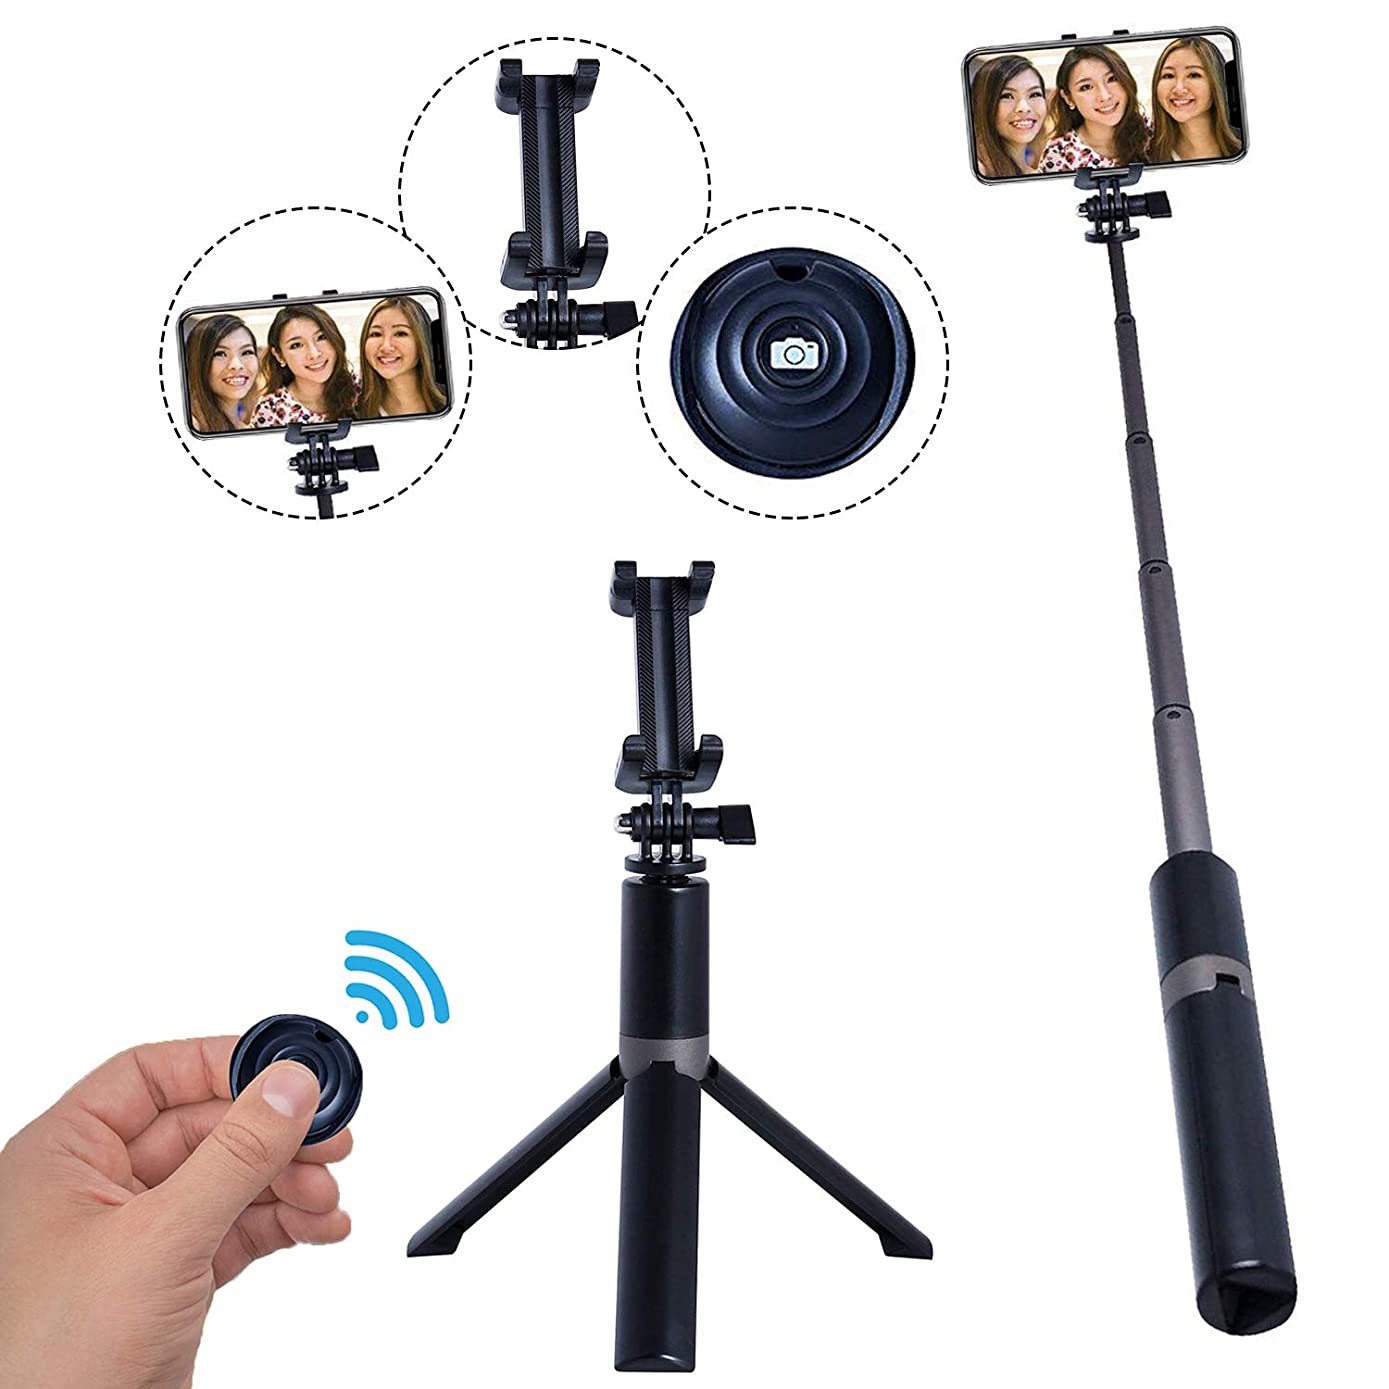 GRIMOLO Extendable Selfie Stick Bluetooth Monopod Tripod Compatible with Ergonomic Camera and Smartphone, Selfie Stick Bluetooth for iPhone and Android Phones/GoPro/Samsung Galaxy/Huawei/Xiaomi